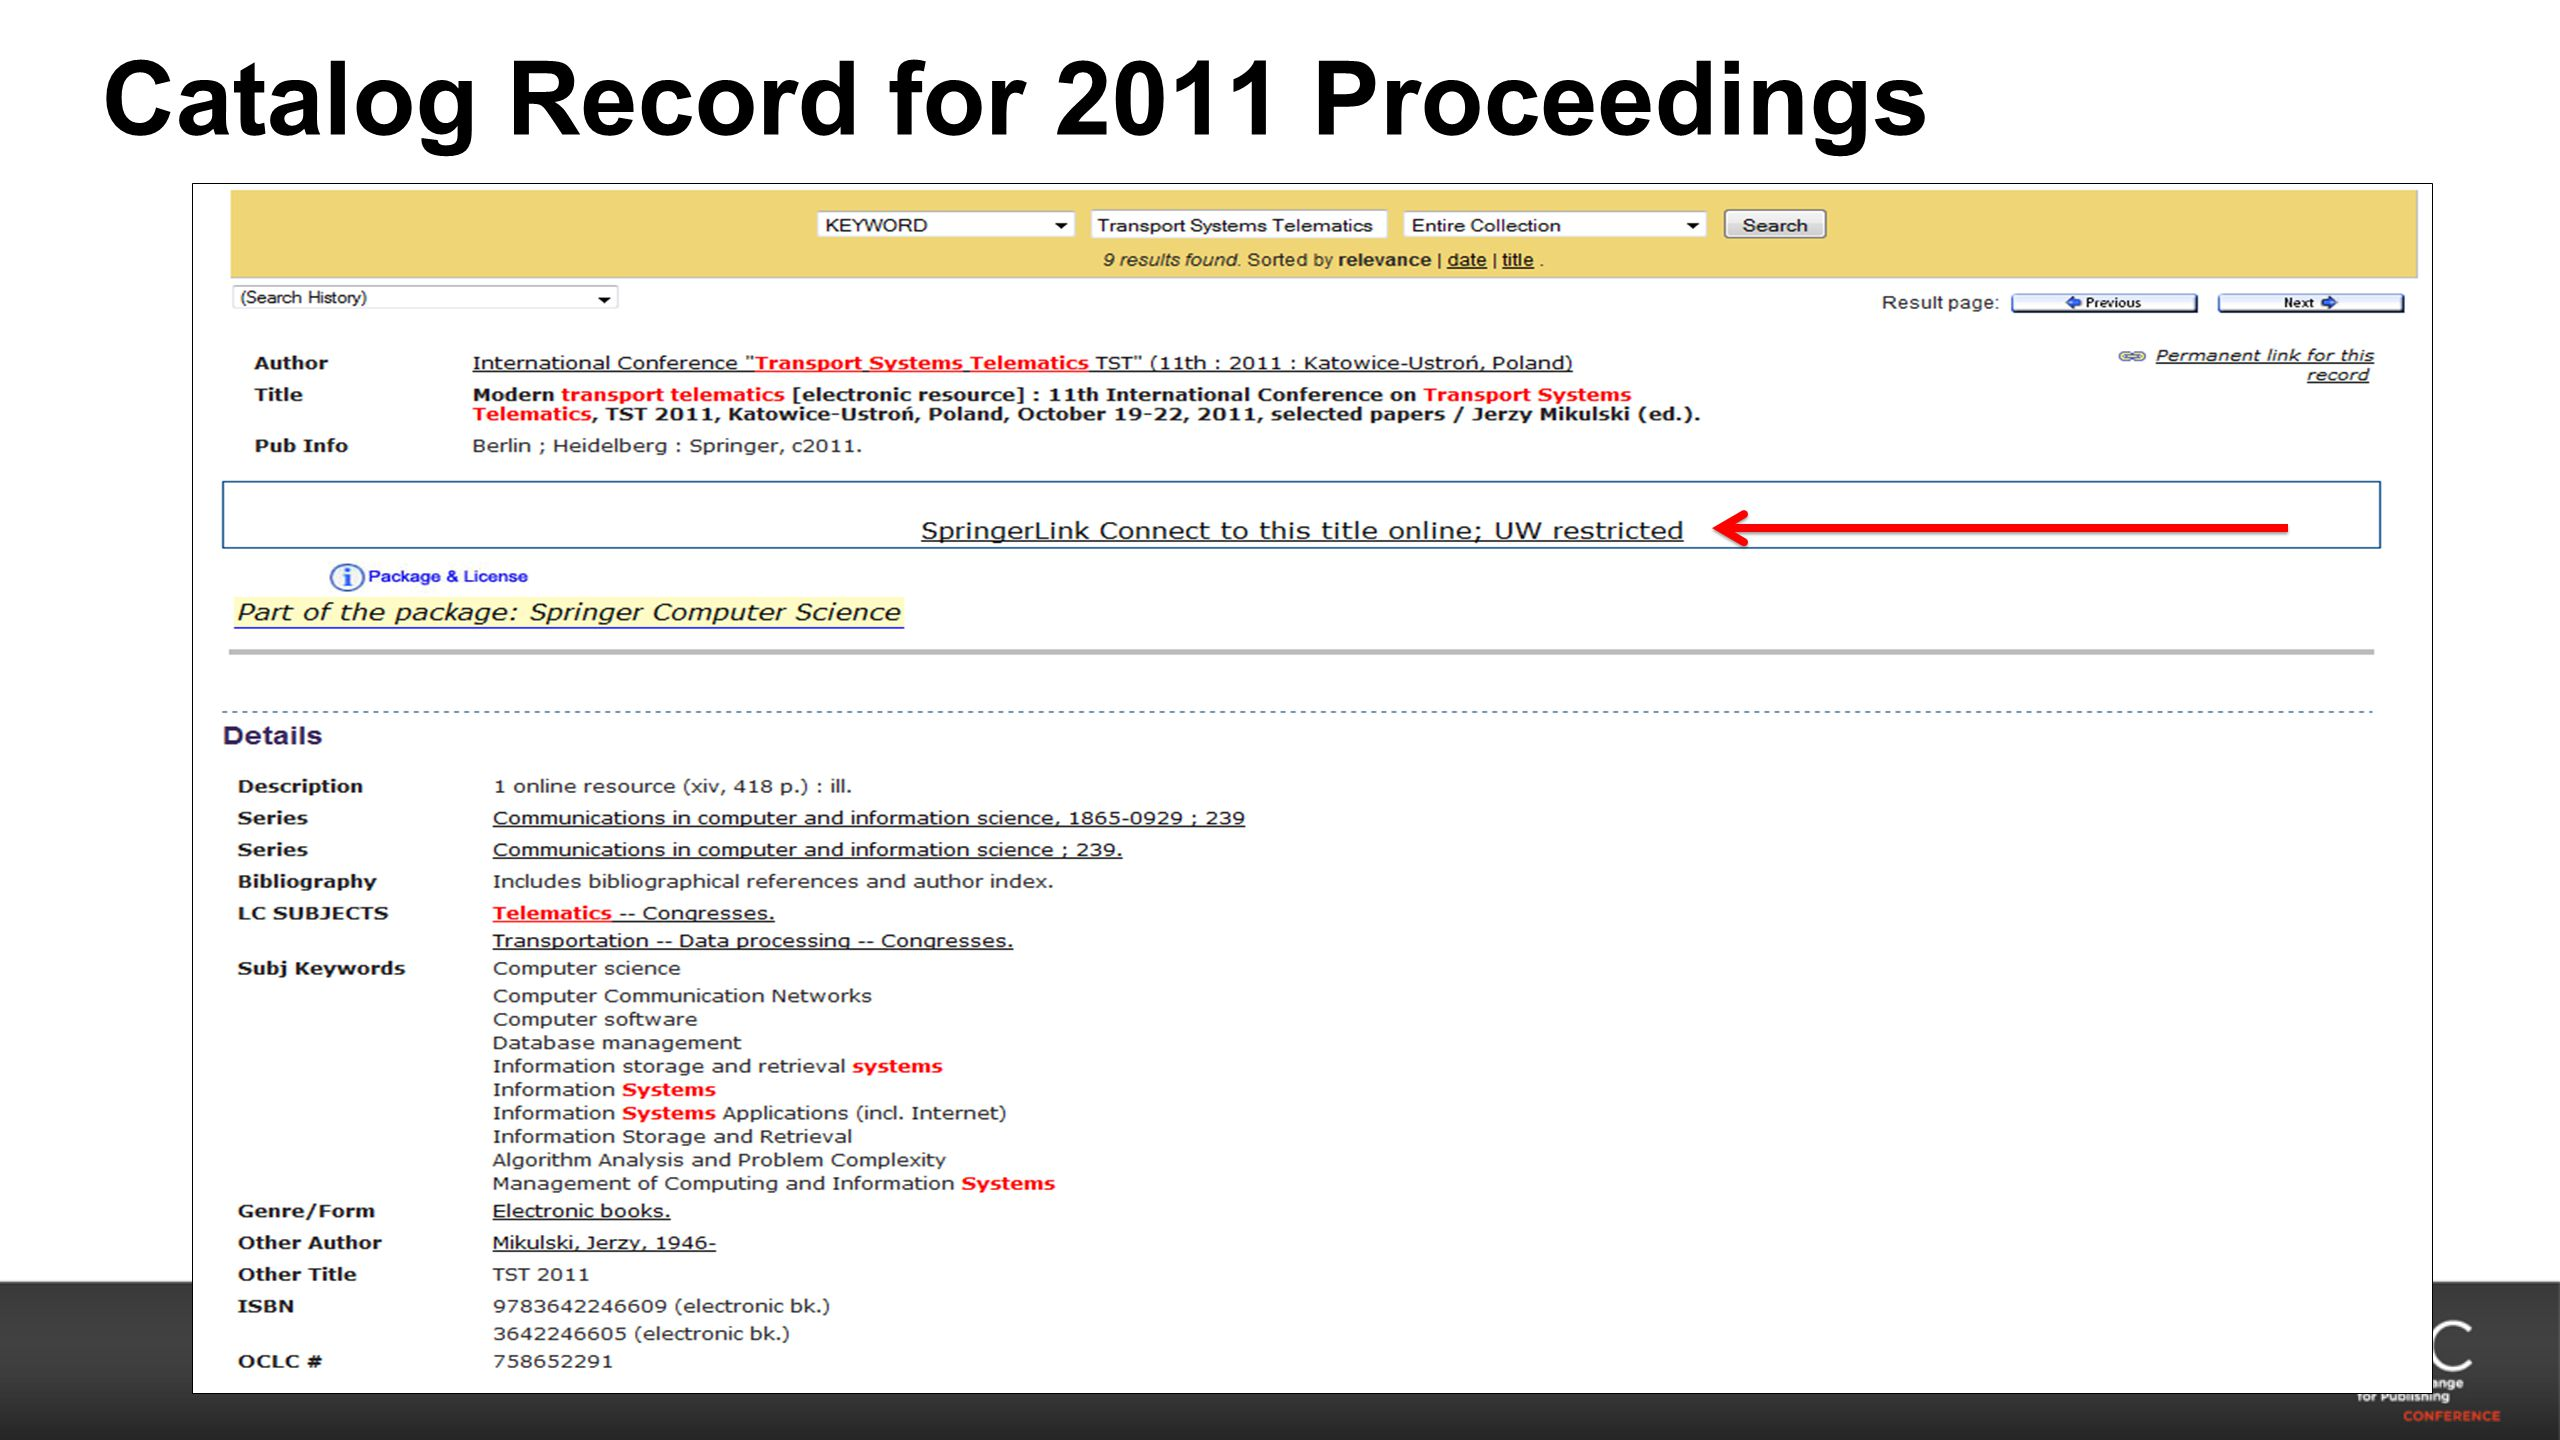 Catalog Record for 2011 Proceedings